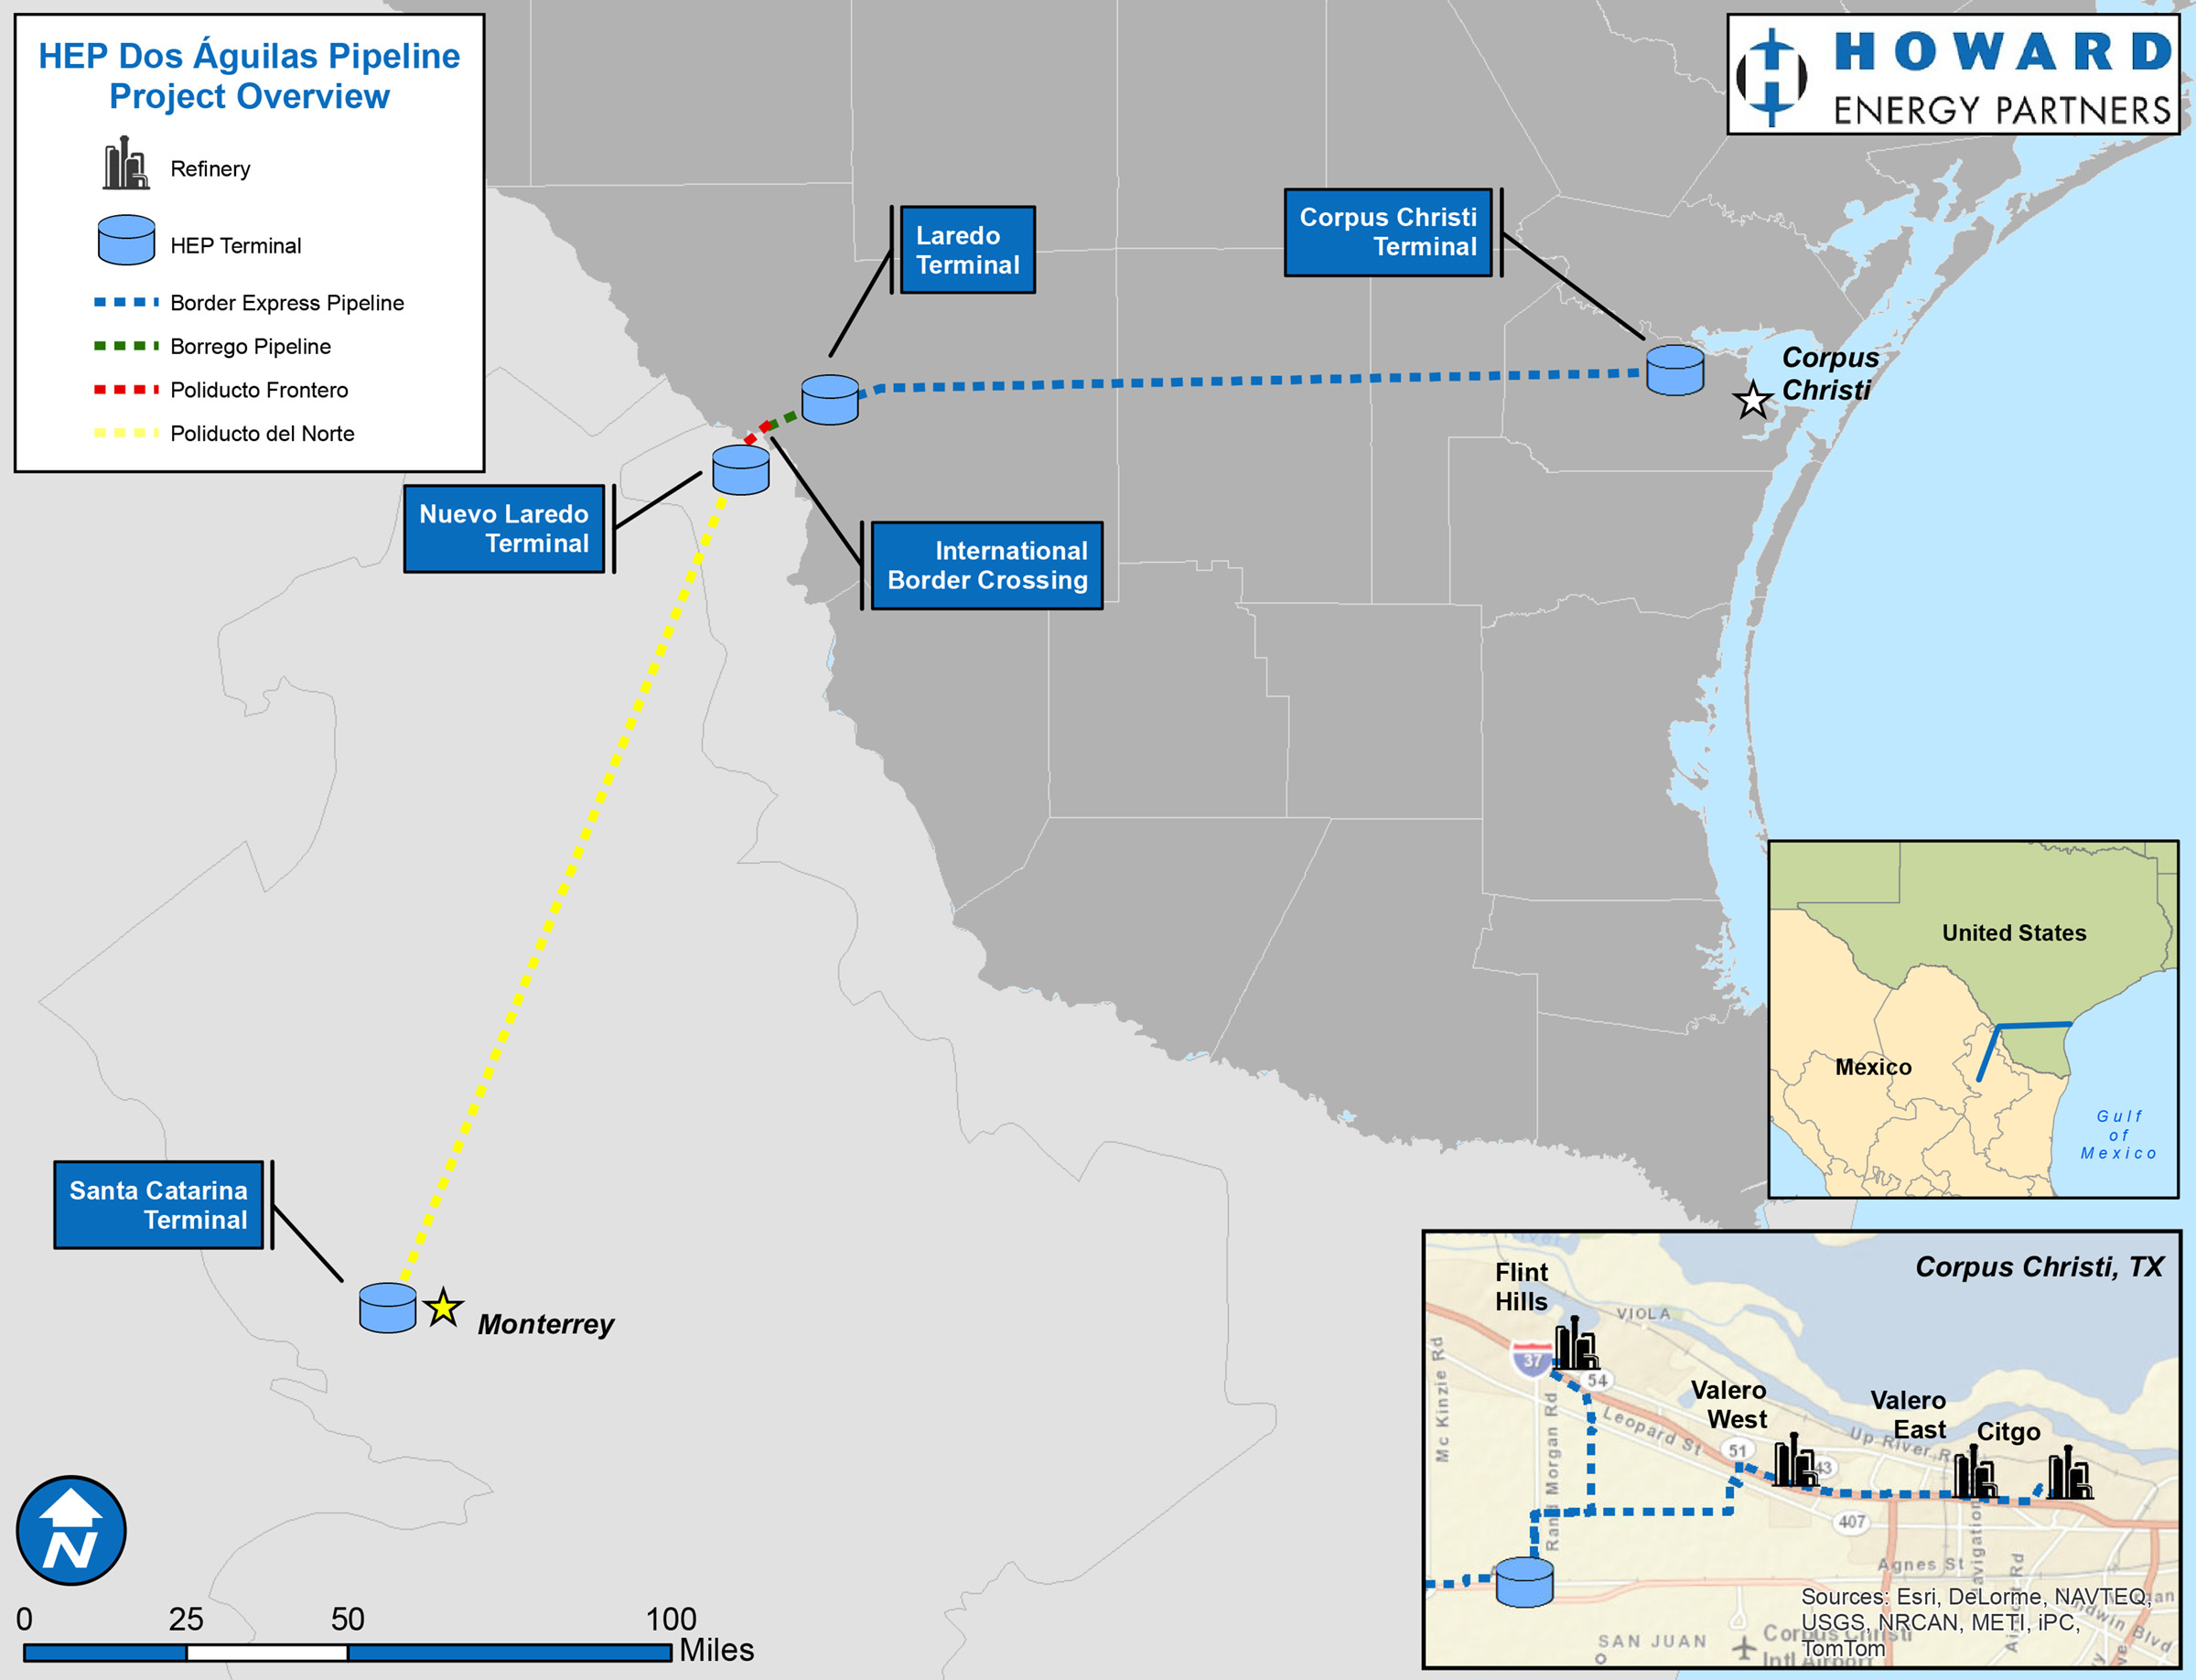 Dos Águilas Pipeline Map, credit www.http://www.dosaguilaspipeline.com/